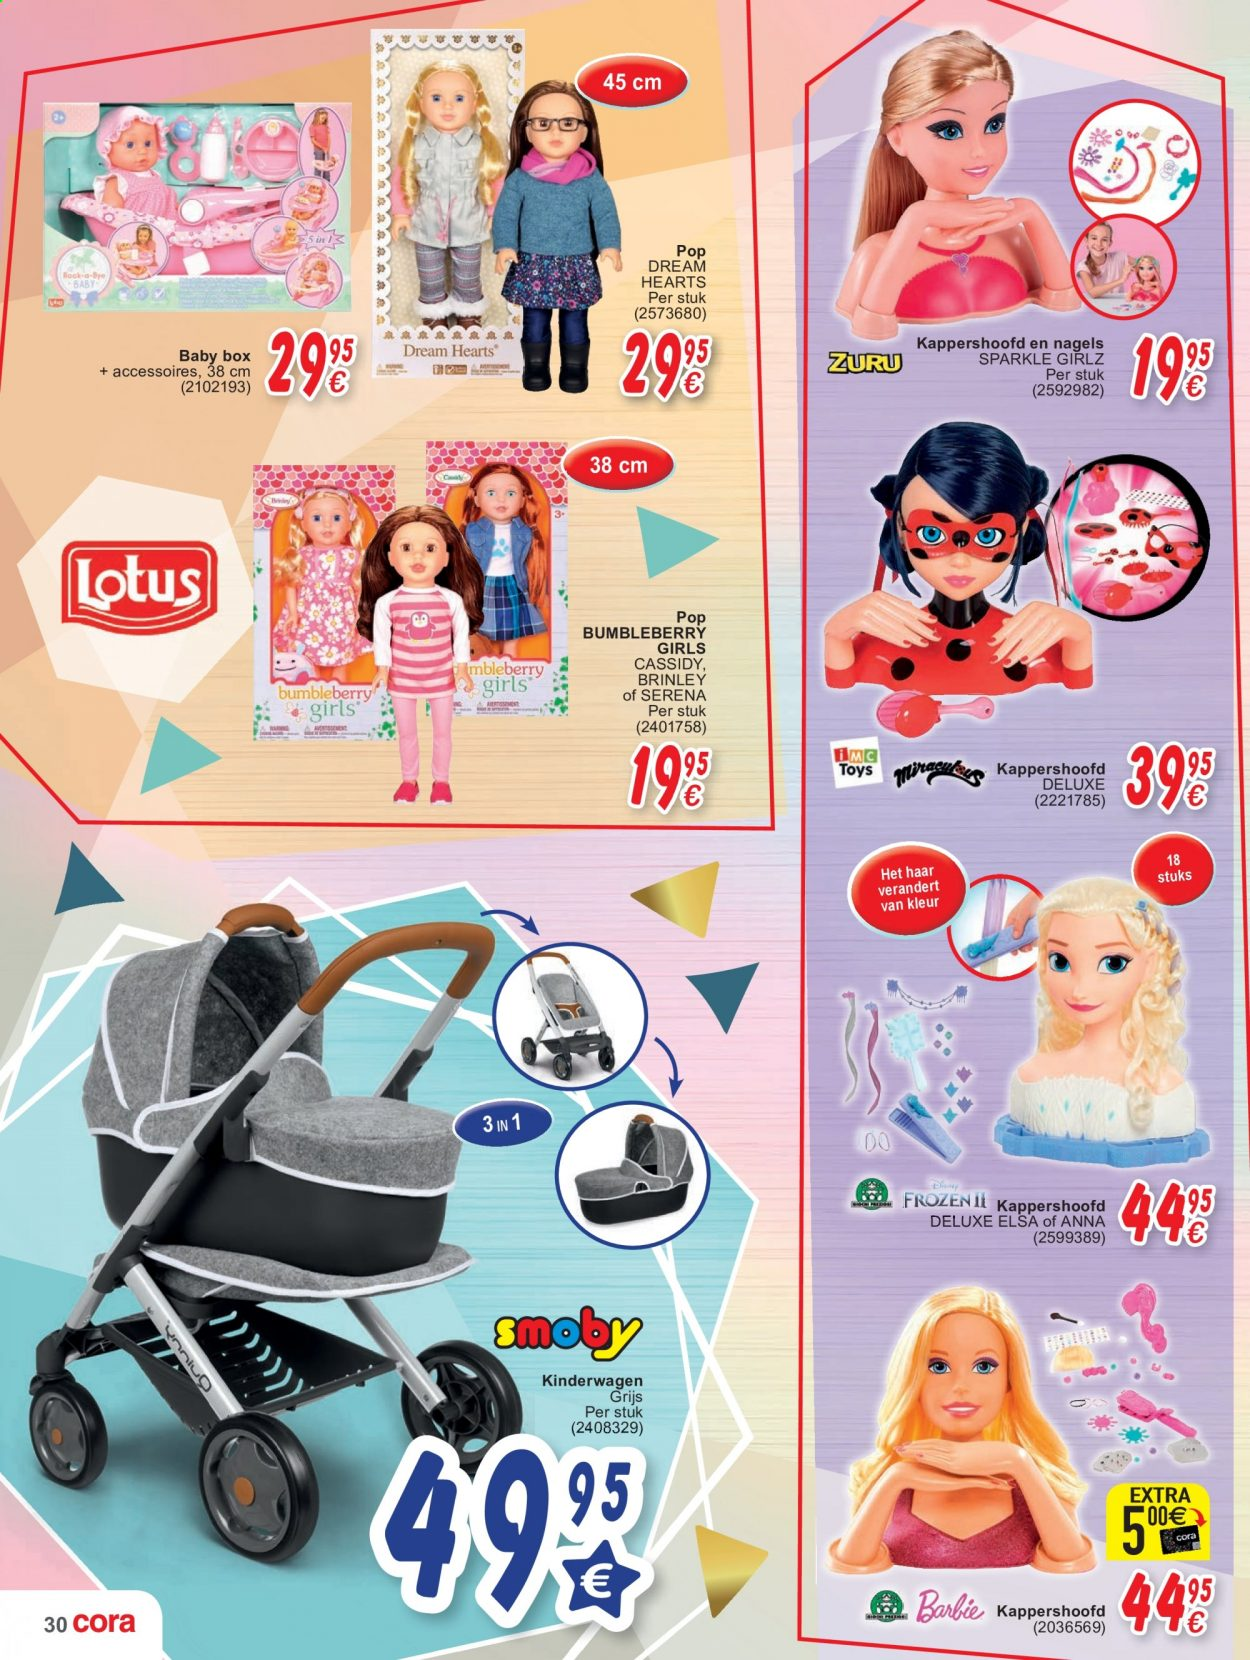 Catalogue Cora - 20.10.2020 - 2.12.2020 - Produits soldés - barbie, lotus. Page 30.